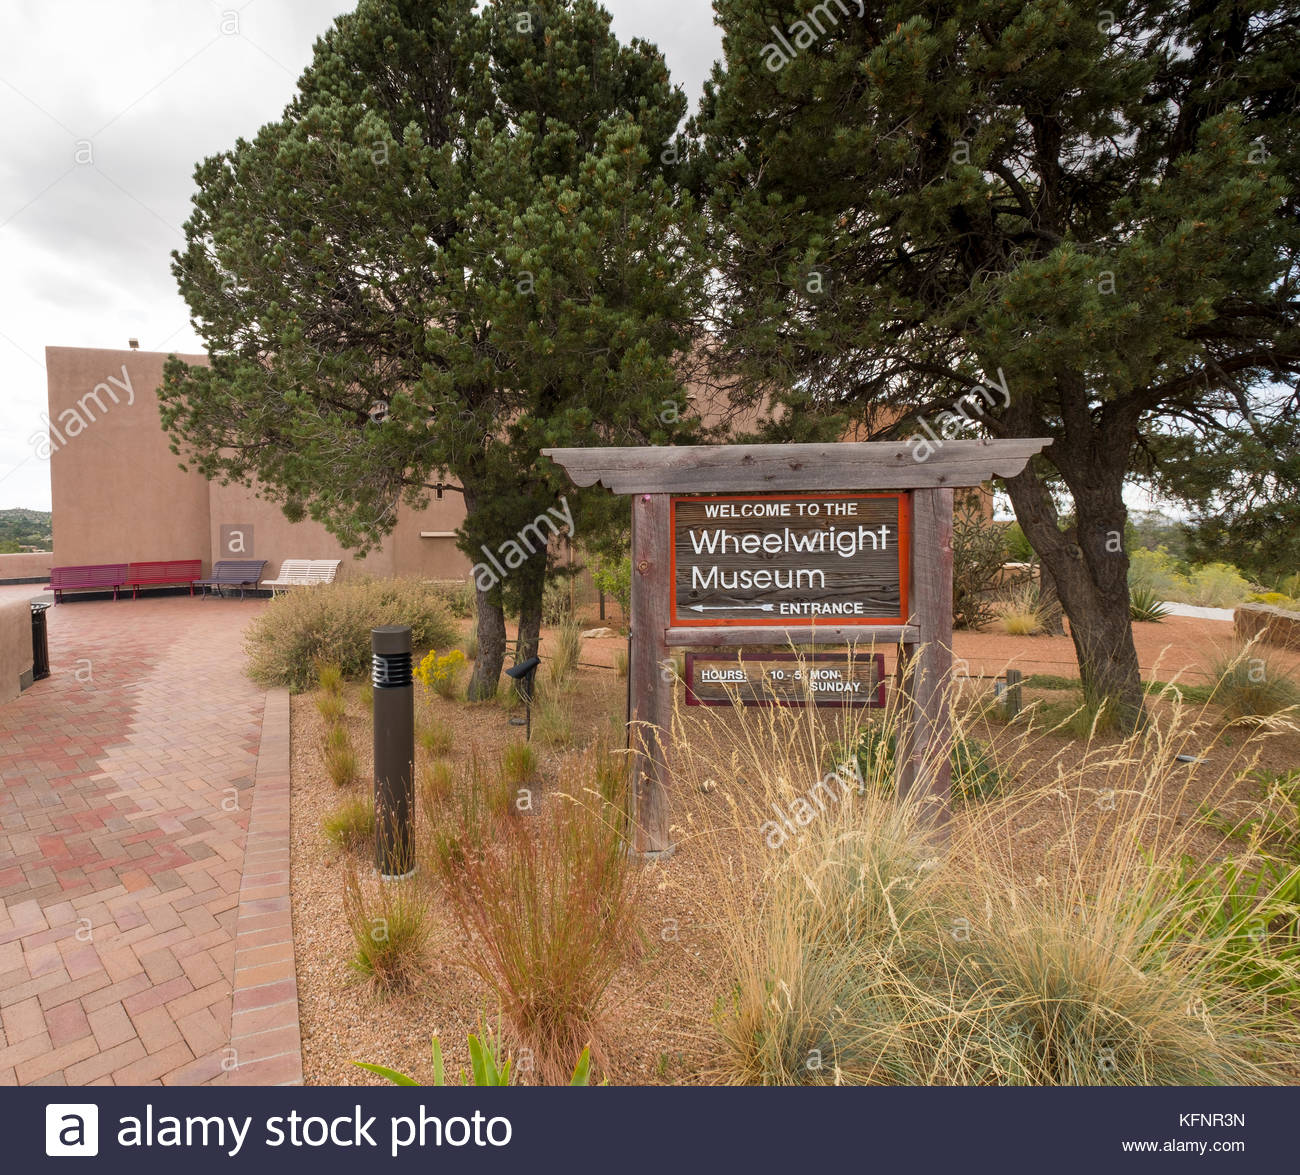 Sign at entrance to the Wheelwright Museum, Santa Fe, Santa Fe County, New Mexico, USA - Stock Image